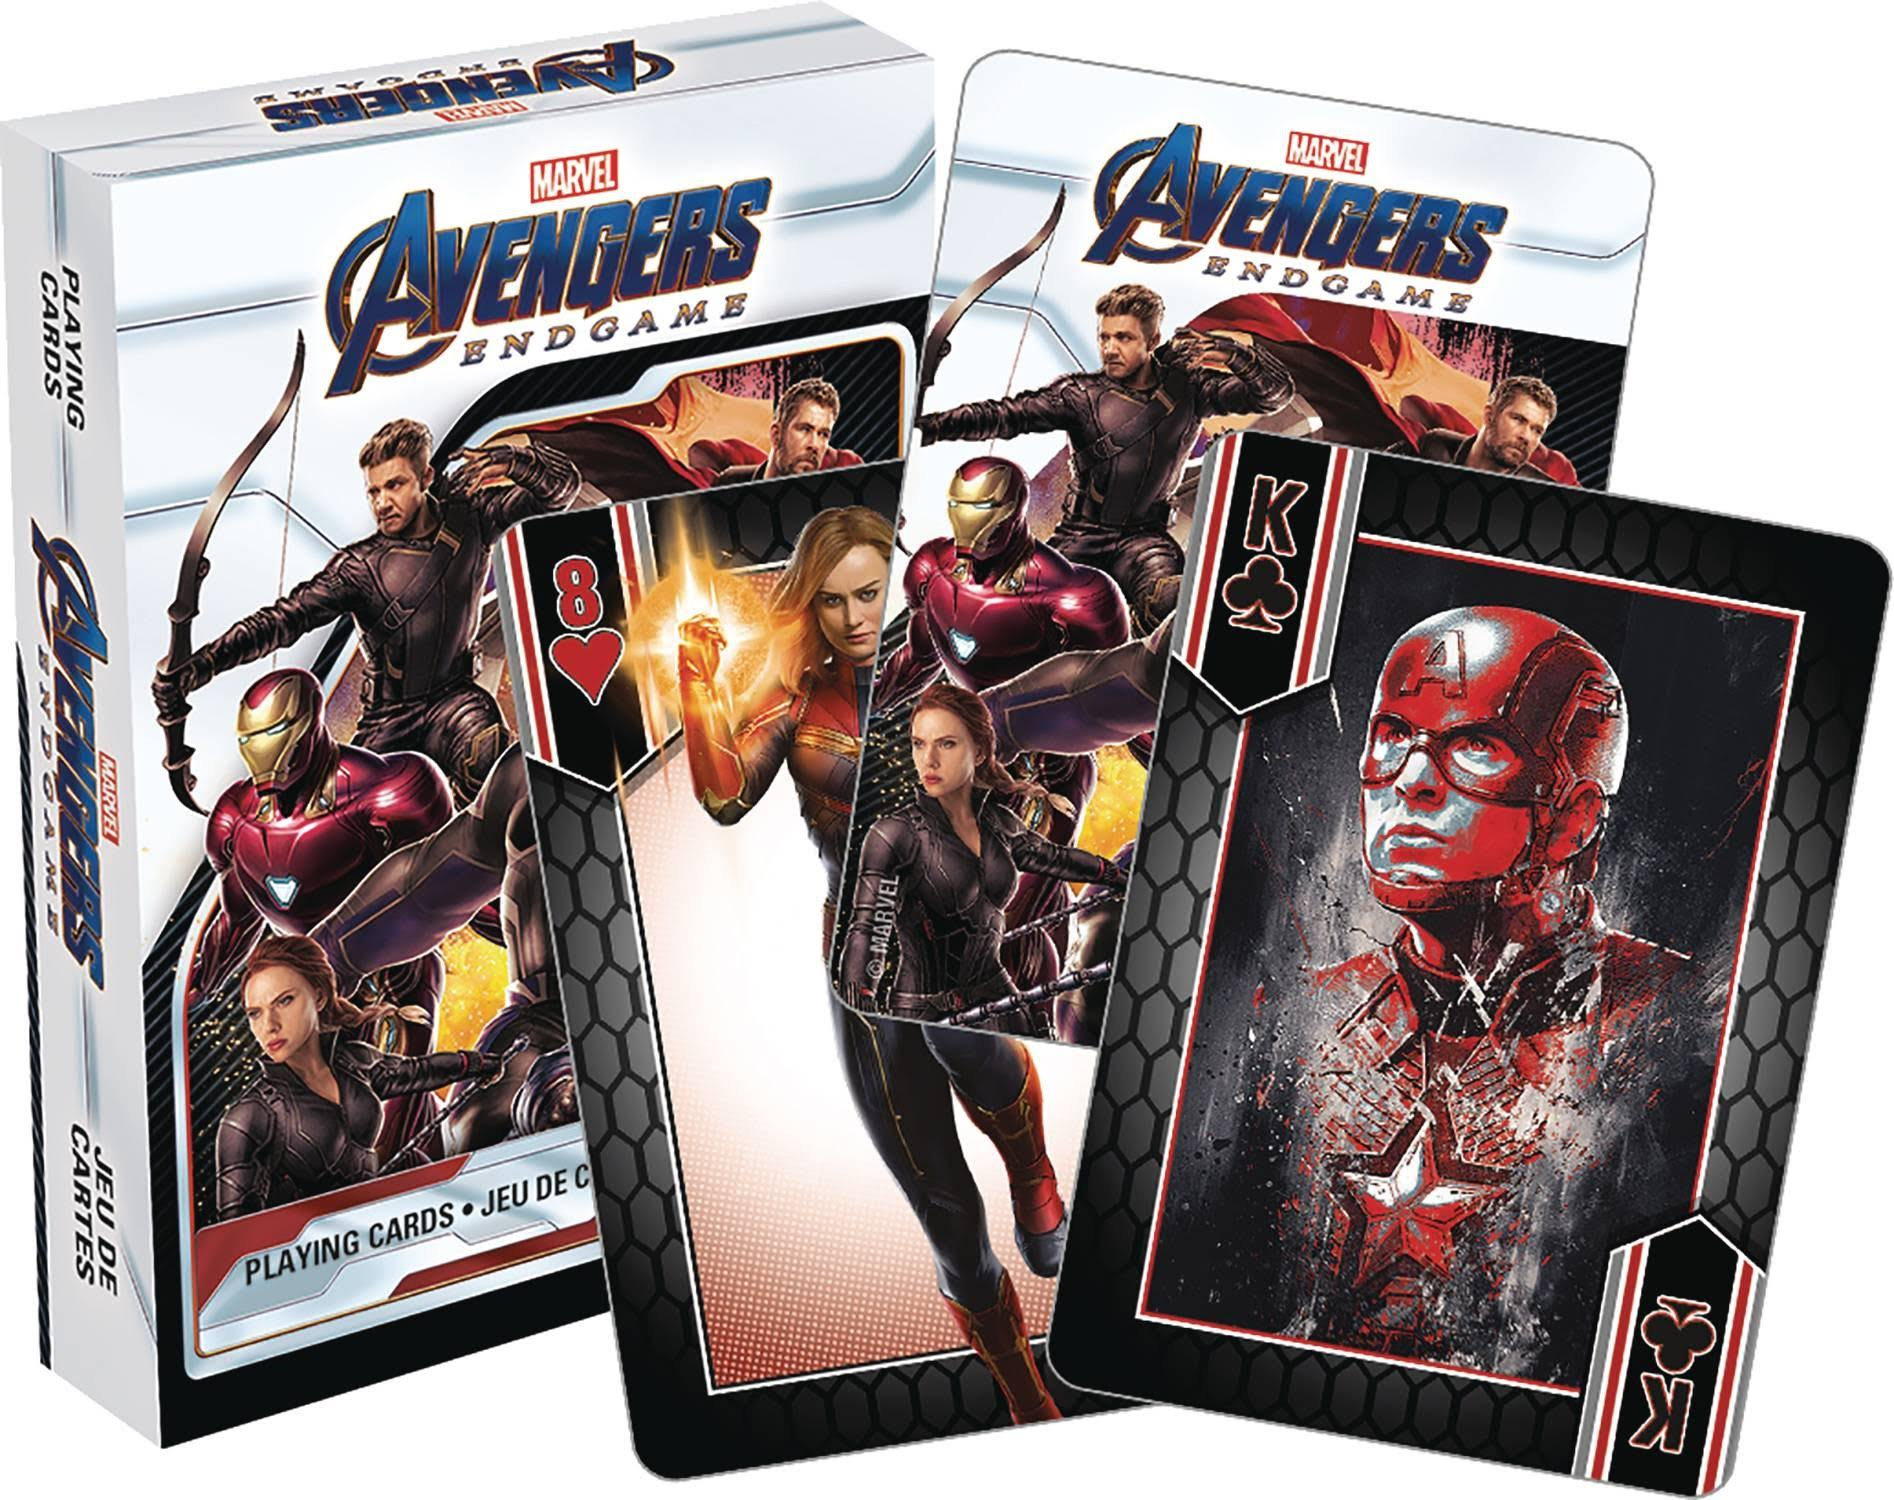 Marvel Avengers Endgame Playing Cards